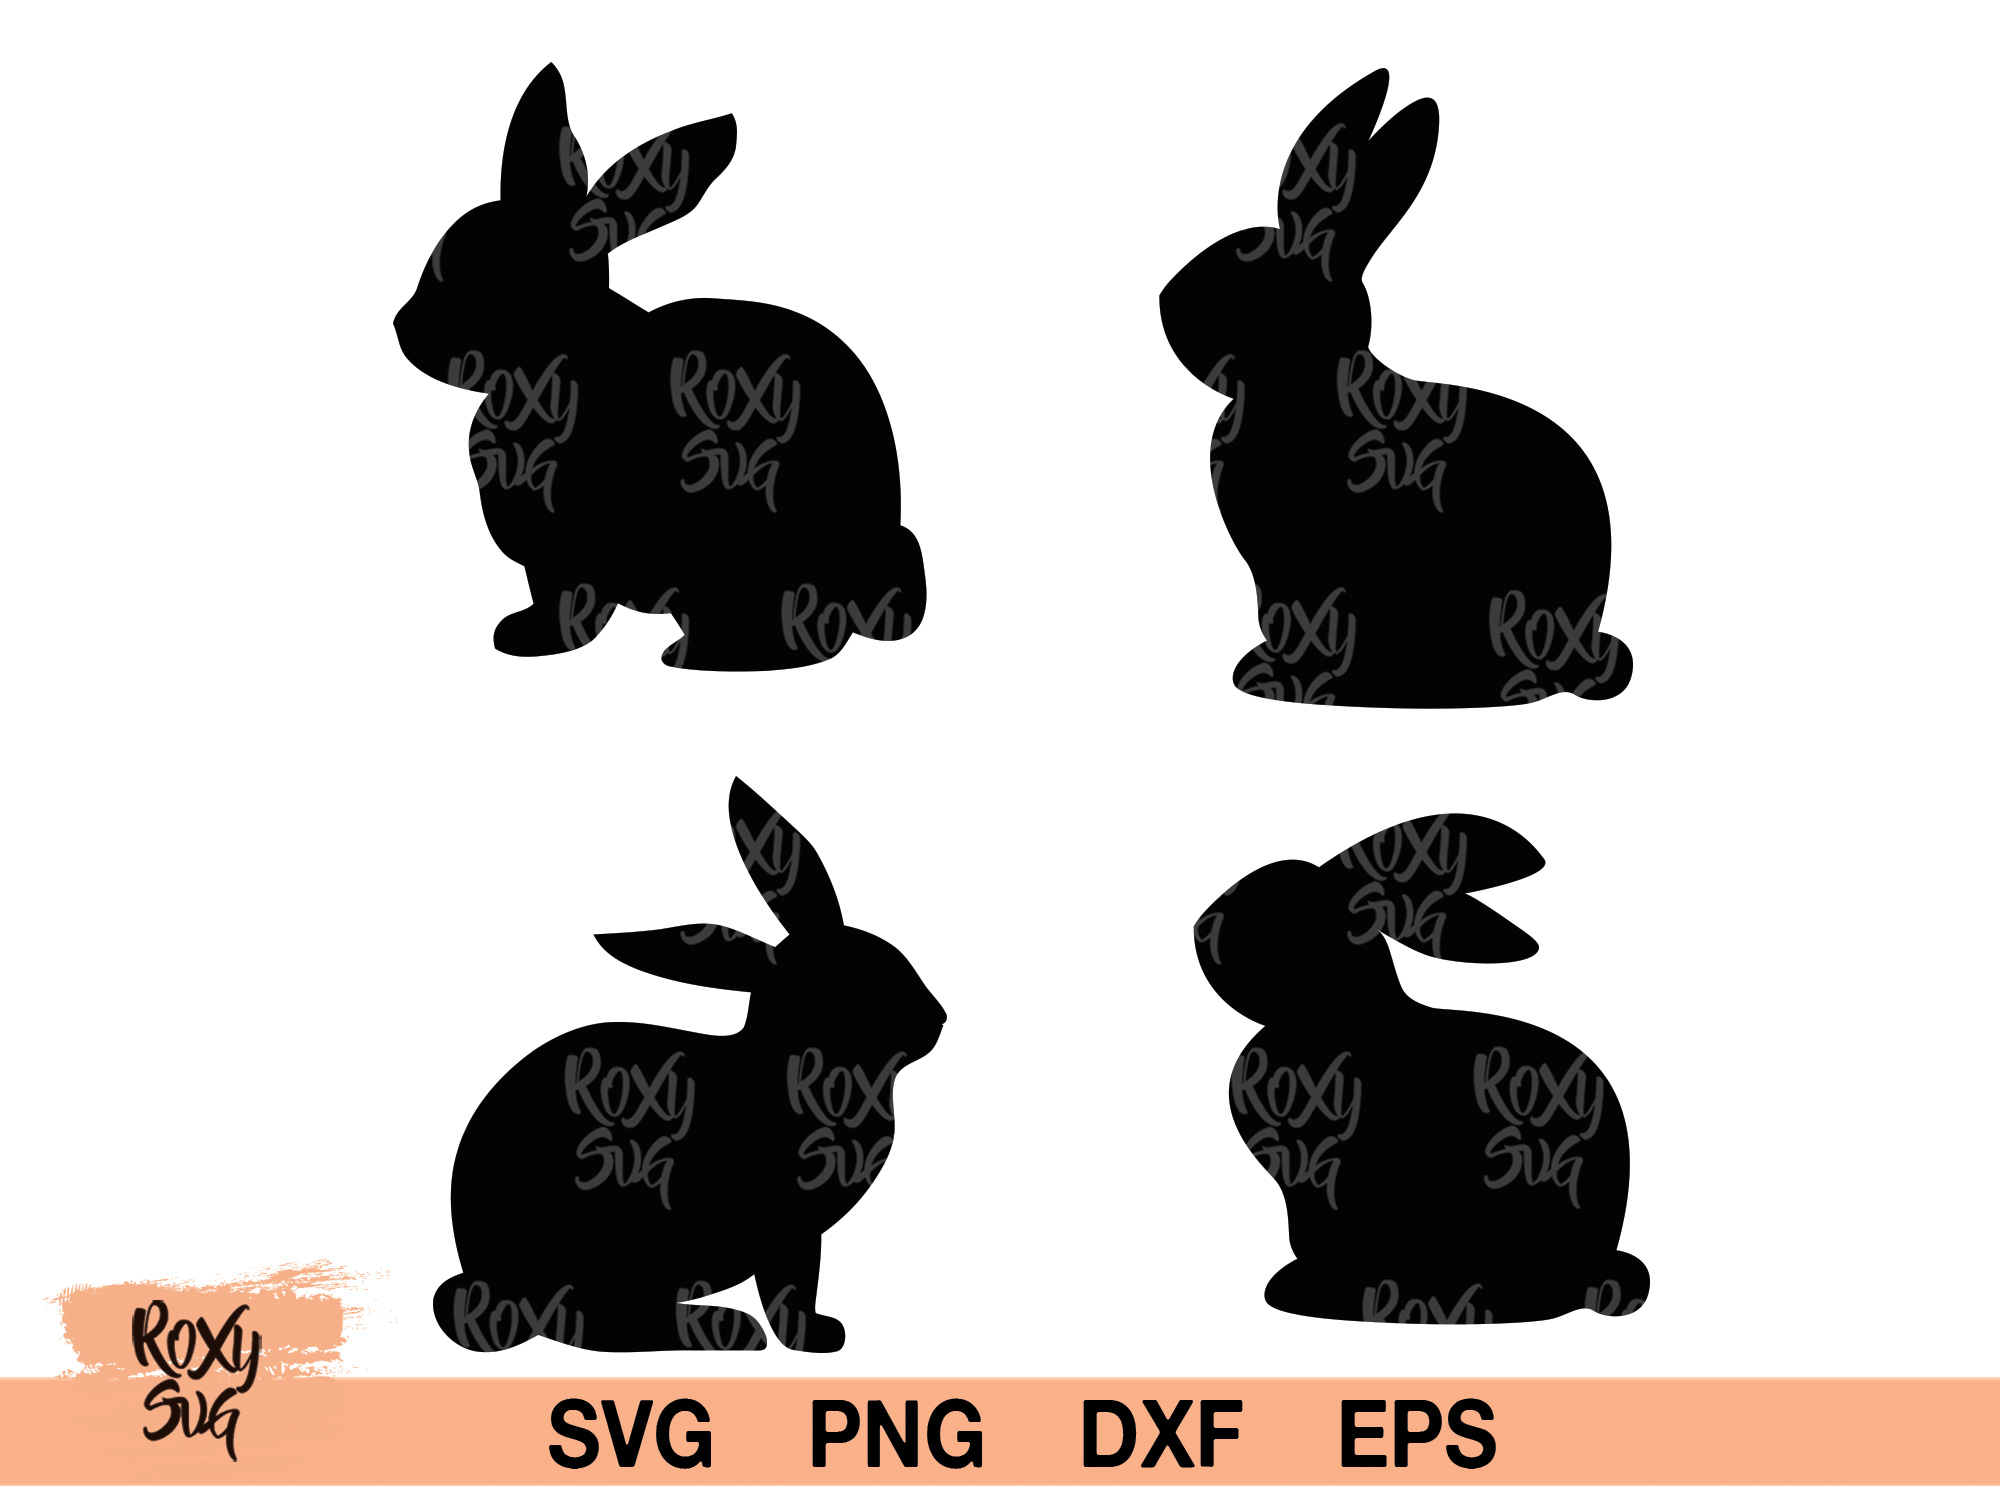 Download Free Easter Bunnies Graphic By Roxysvg26 Creative Fabrica for Cricut Explore, Silhouette and other cutting machines.